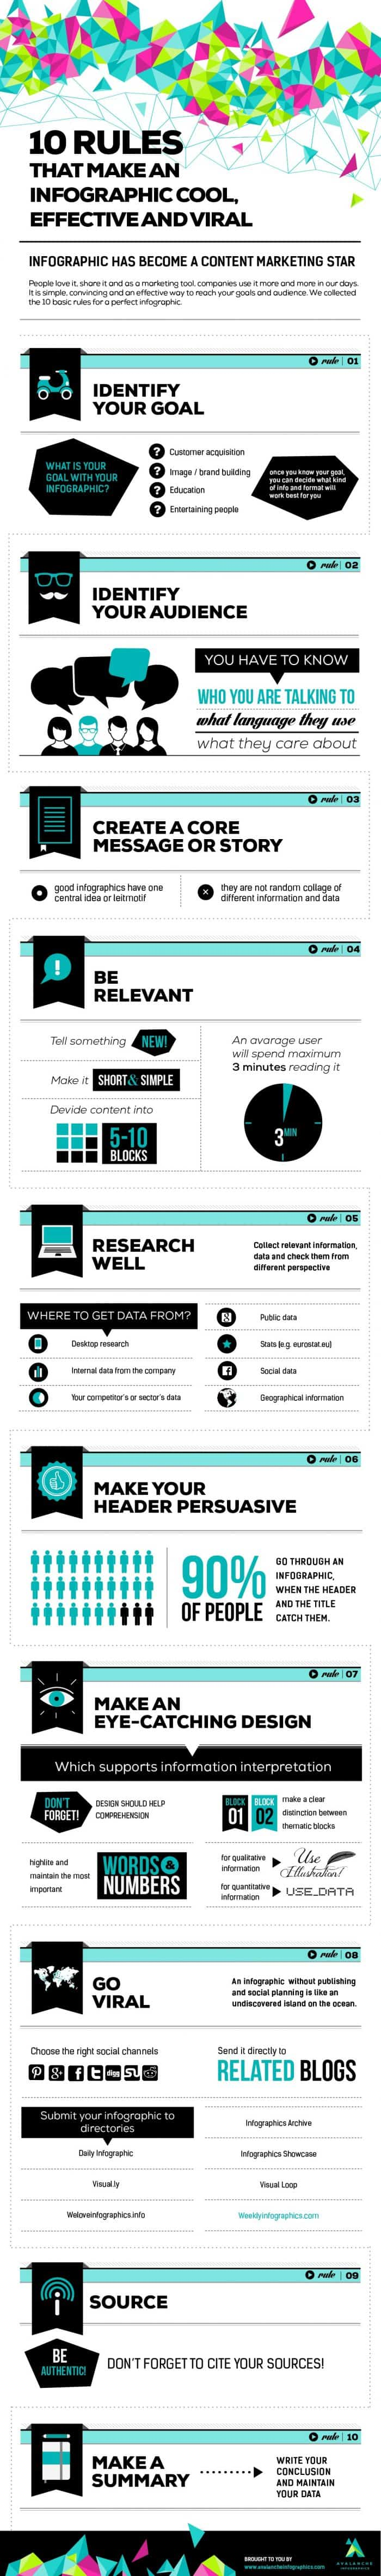 10 Rules for Making an Infographic Cool, Effective and Viral